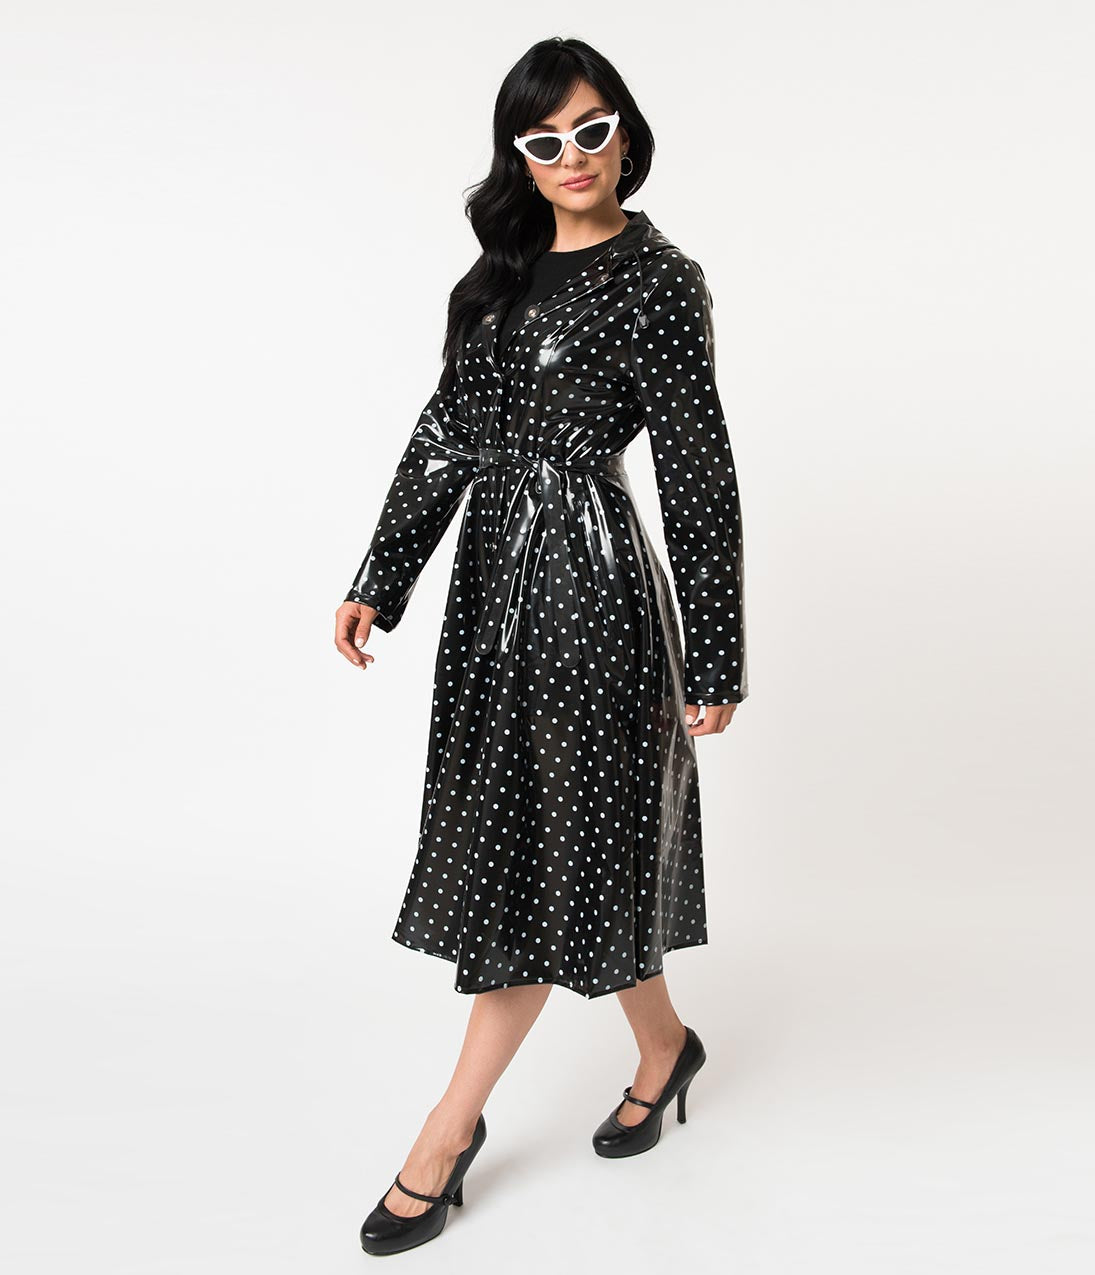 1950s Jackets, Coats, Bolero | Swing, Pin Up, Rockabilly Vintage Style Black  White Polka Dot Long Sleeve Ruby Raincoat $63.00 AT vintagedancer.com